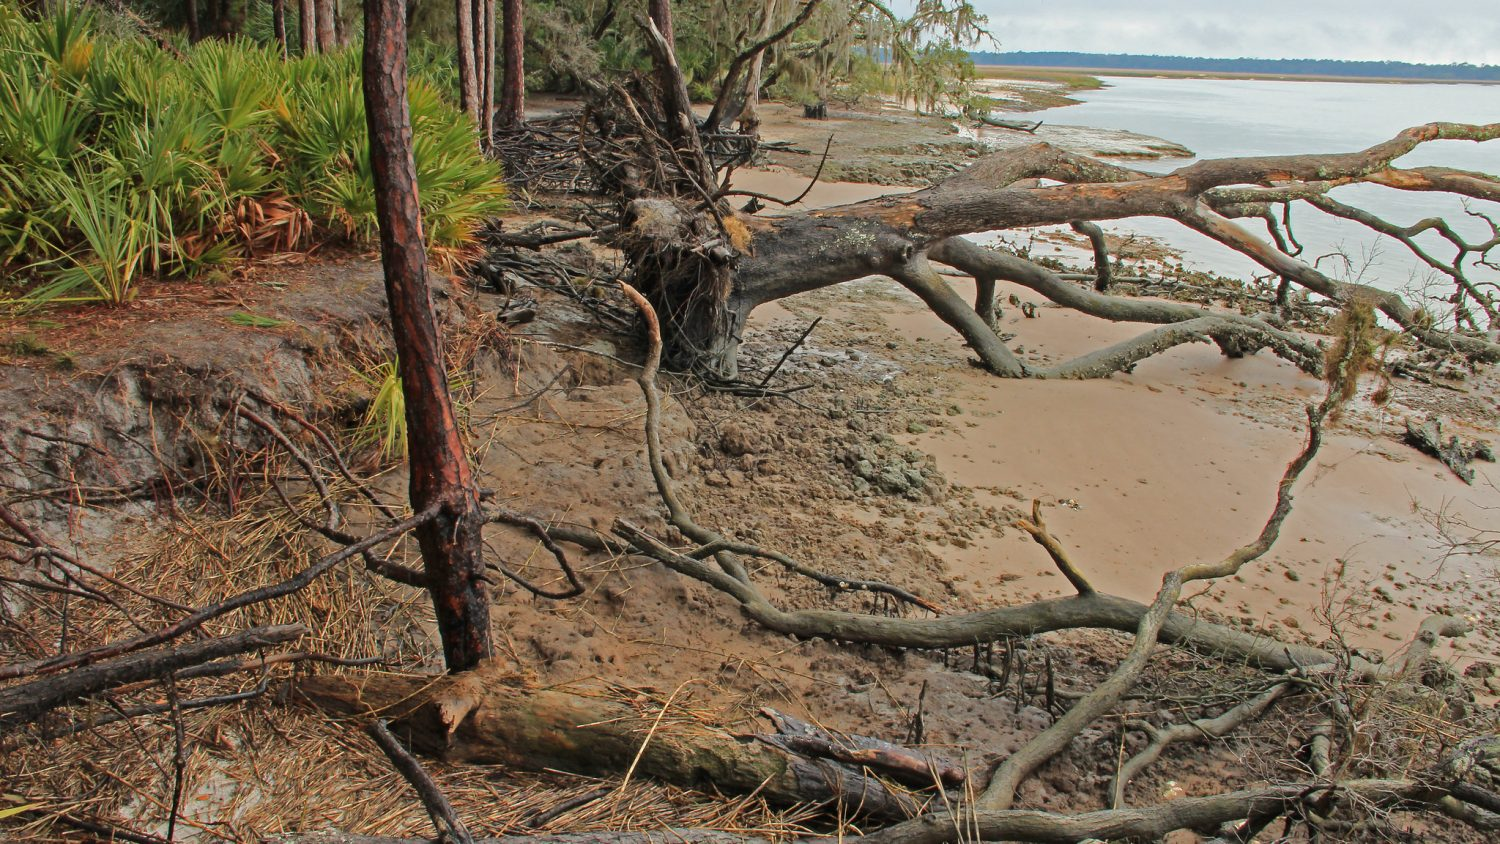 A fallen tree due to coastal erosion at Brikckhill Bluff, Cumberland Island, GA.